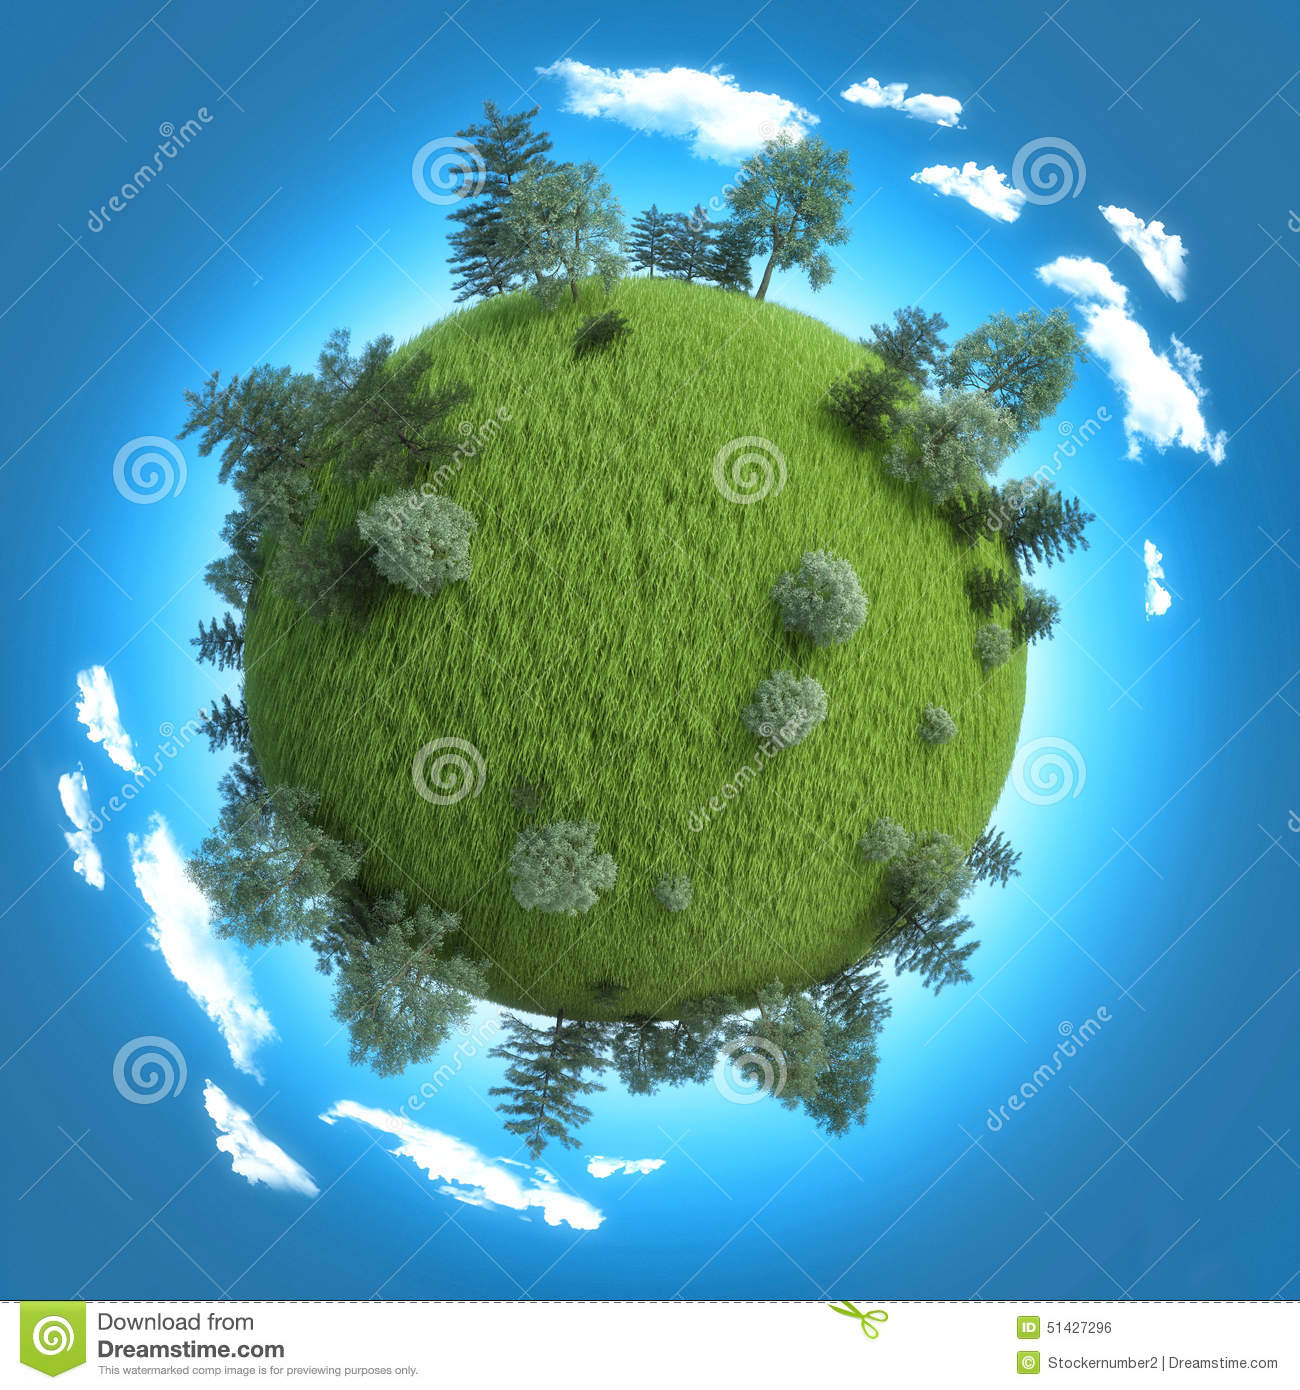 mini planet concept empty space on fresh green field and trees stock illustration image 51427296. Black Bedroom Furniture Sets. Home Design Ideas